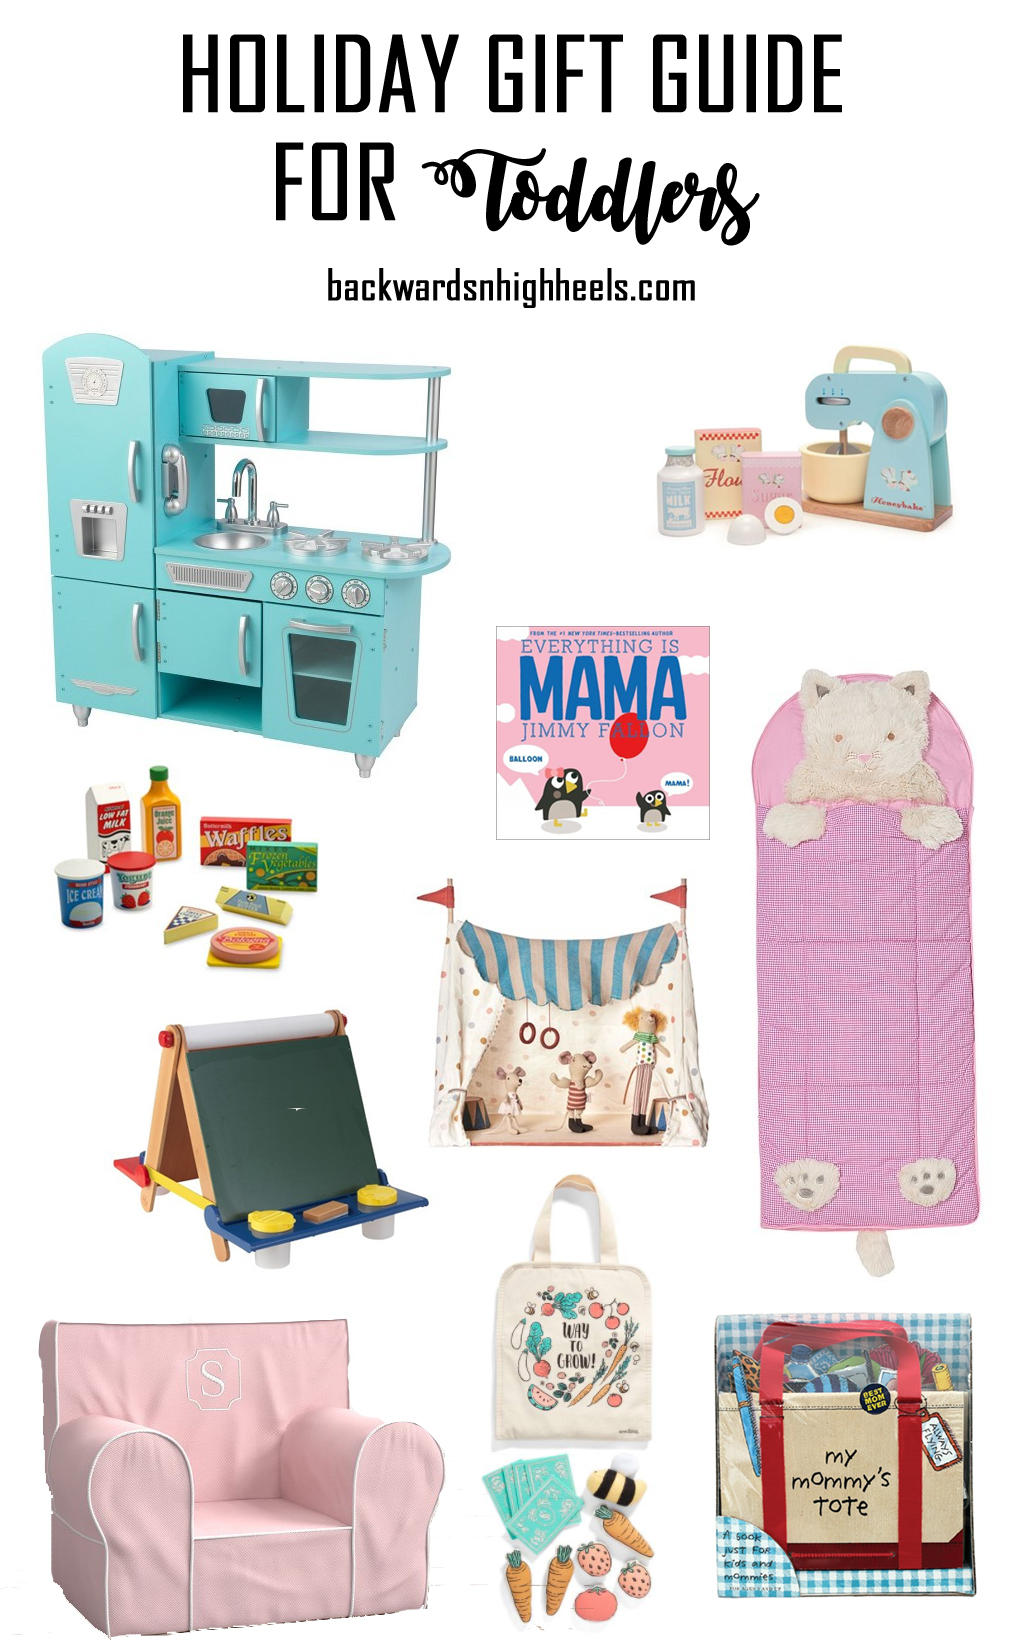 Toddler_Holiday-Gift-Guide copy